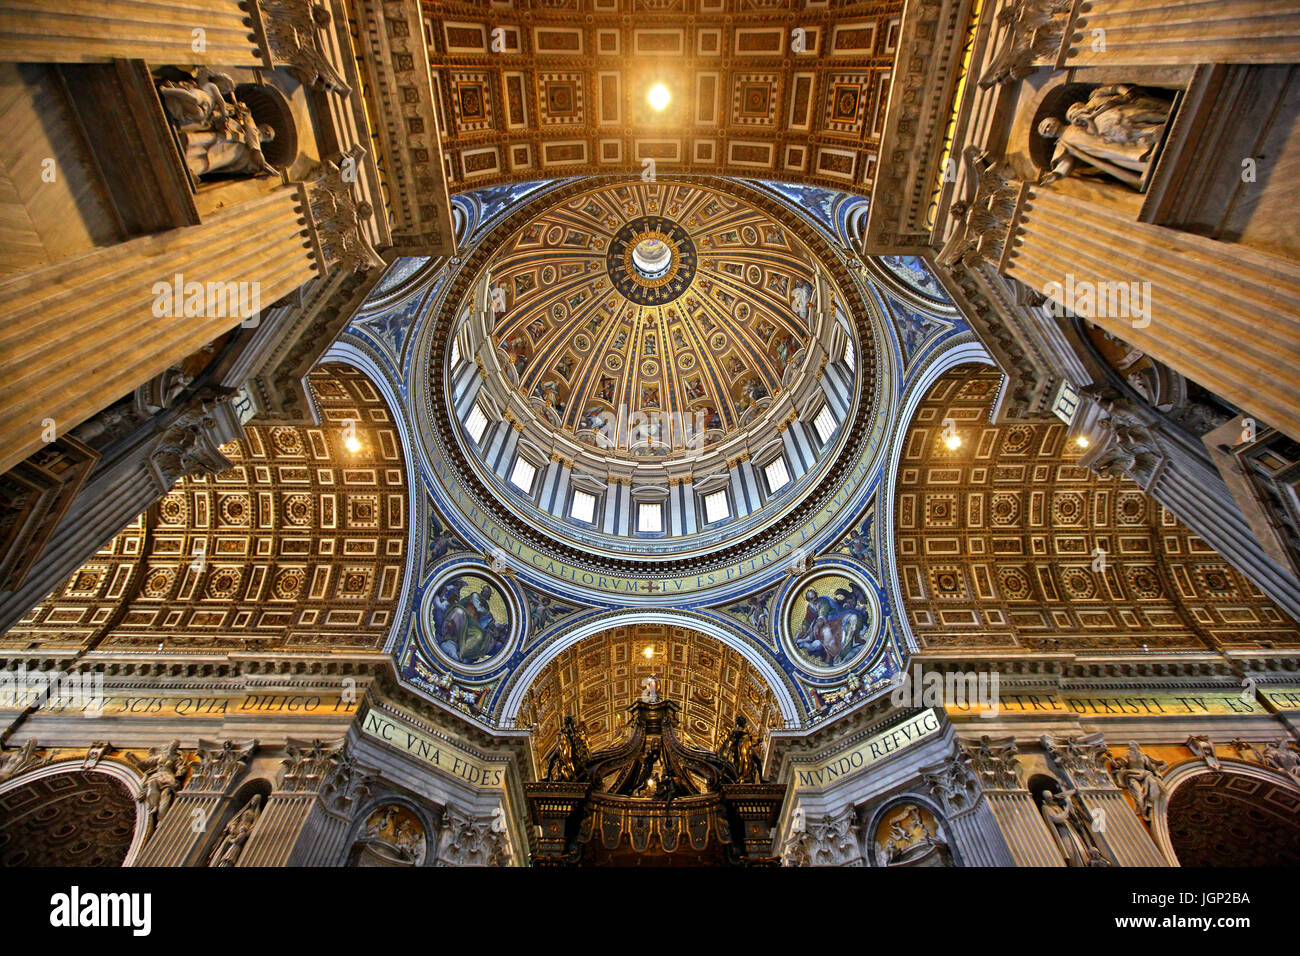 The imposing dome of St. Peter's Basilica, Vatican City State. - Stock Image